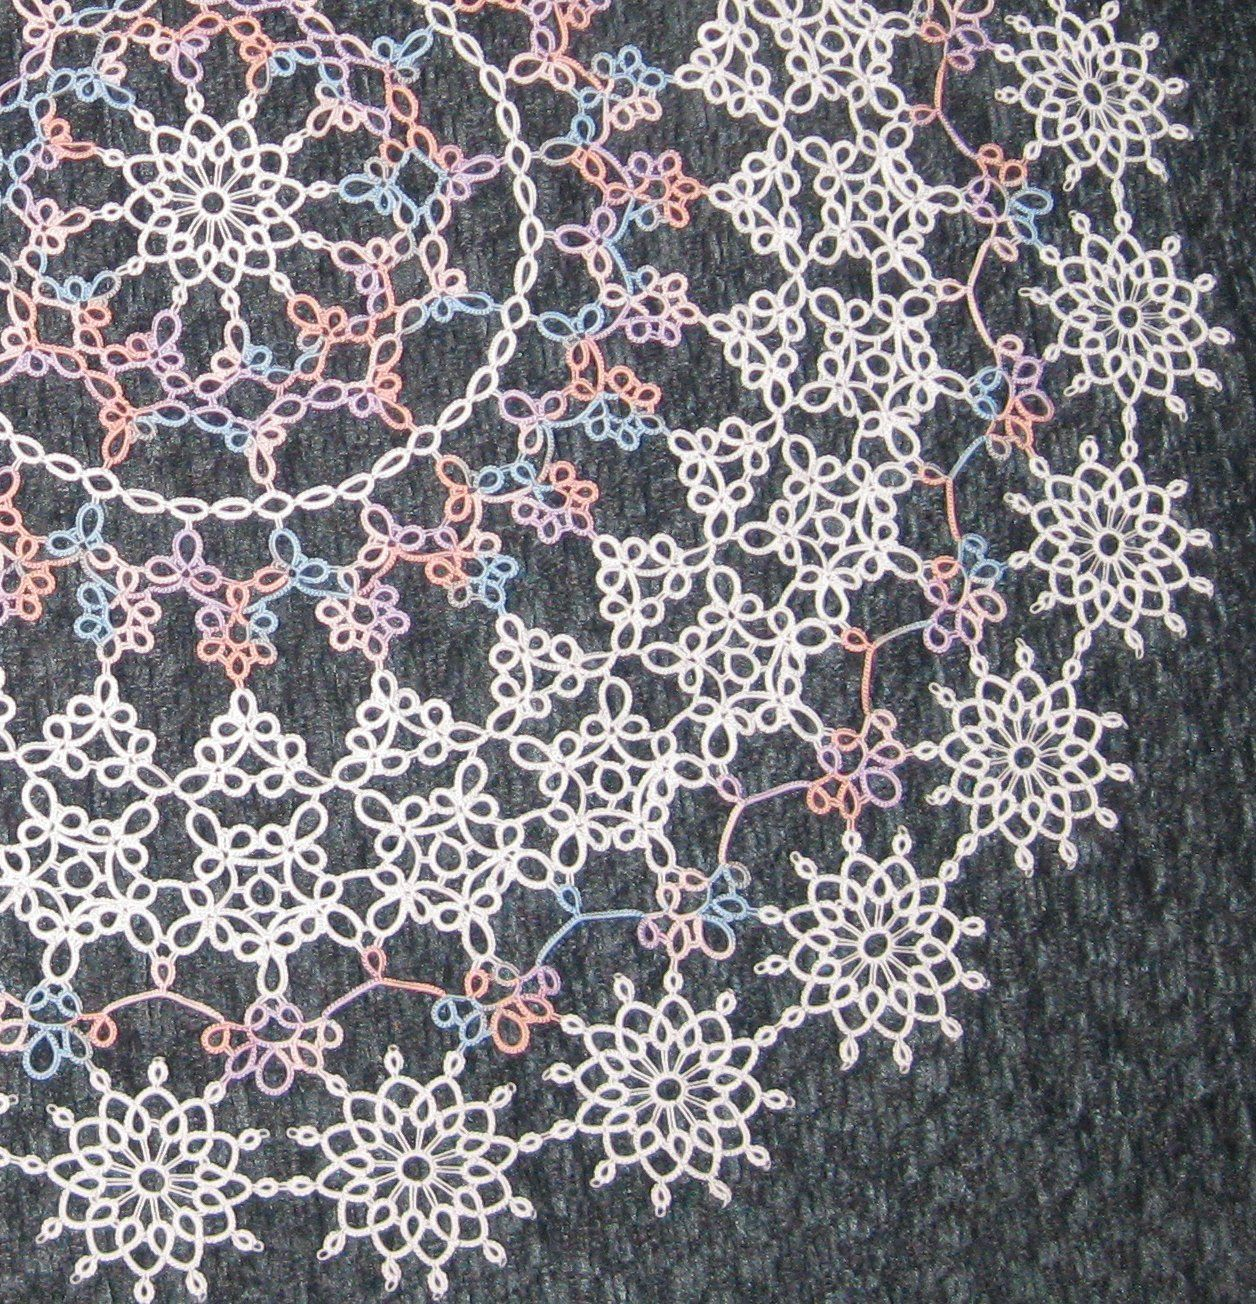 Tat's All She Wrote: Doily